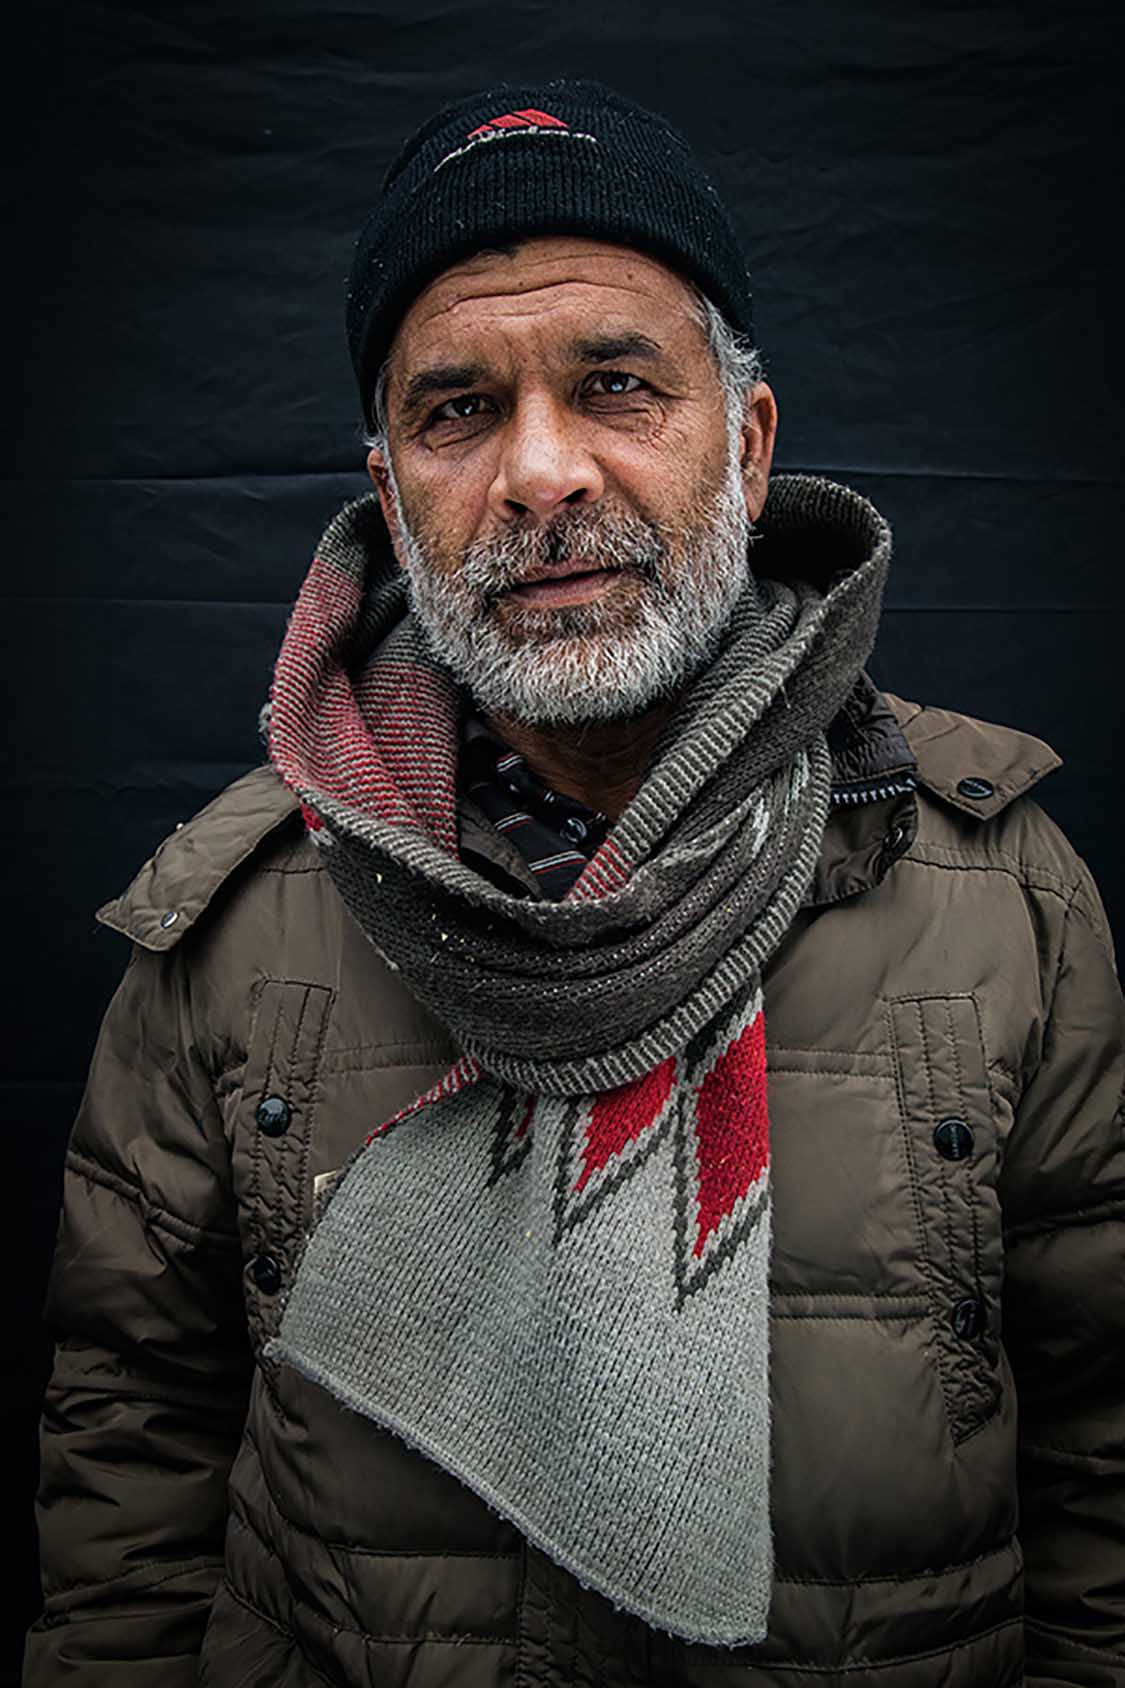 """""""Just like many others here, I lost count of how many times I tried to cross into Hungary. But I will keep trying. My destiny is not here in Serbia.""""Jan, 65, Afghanistan."""